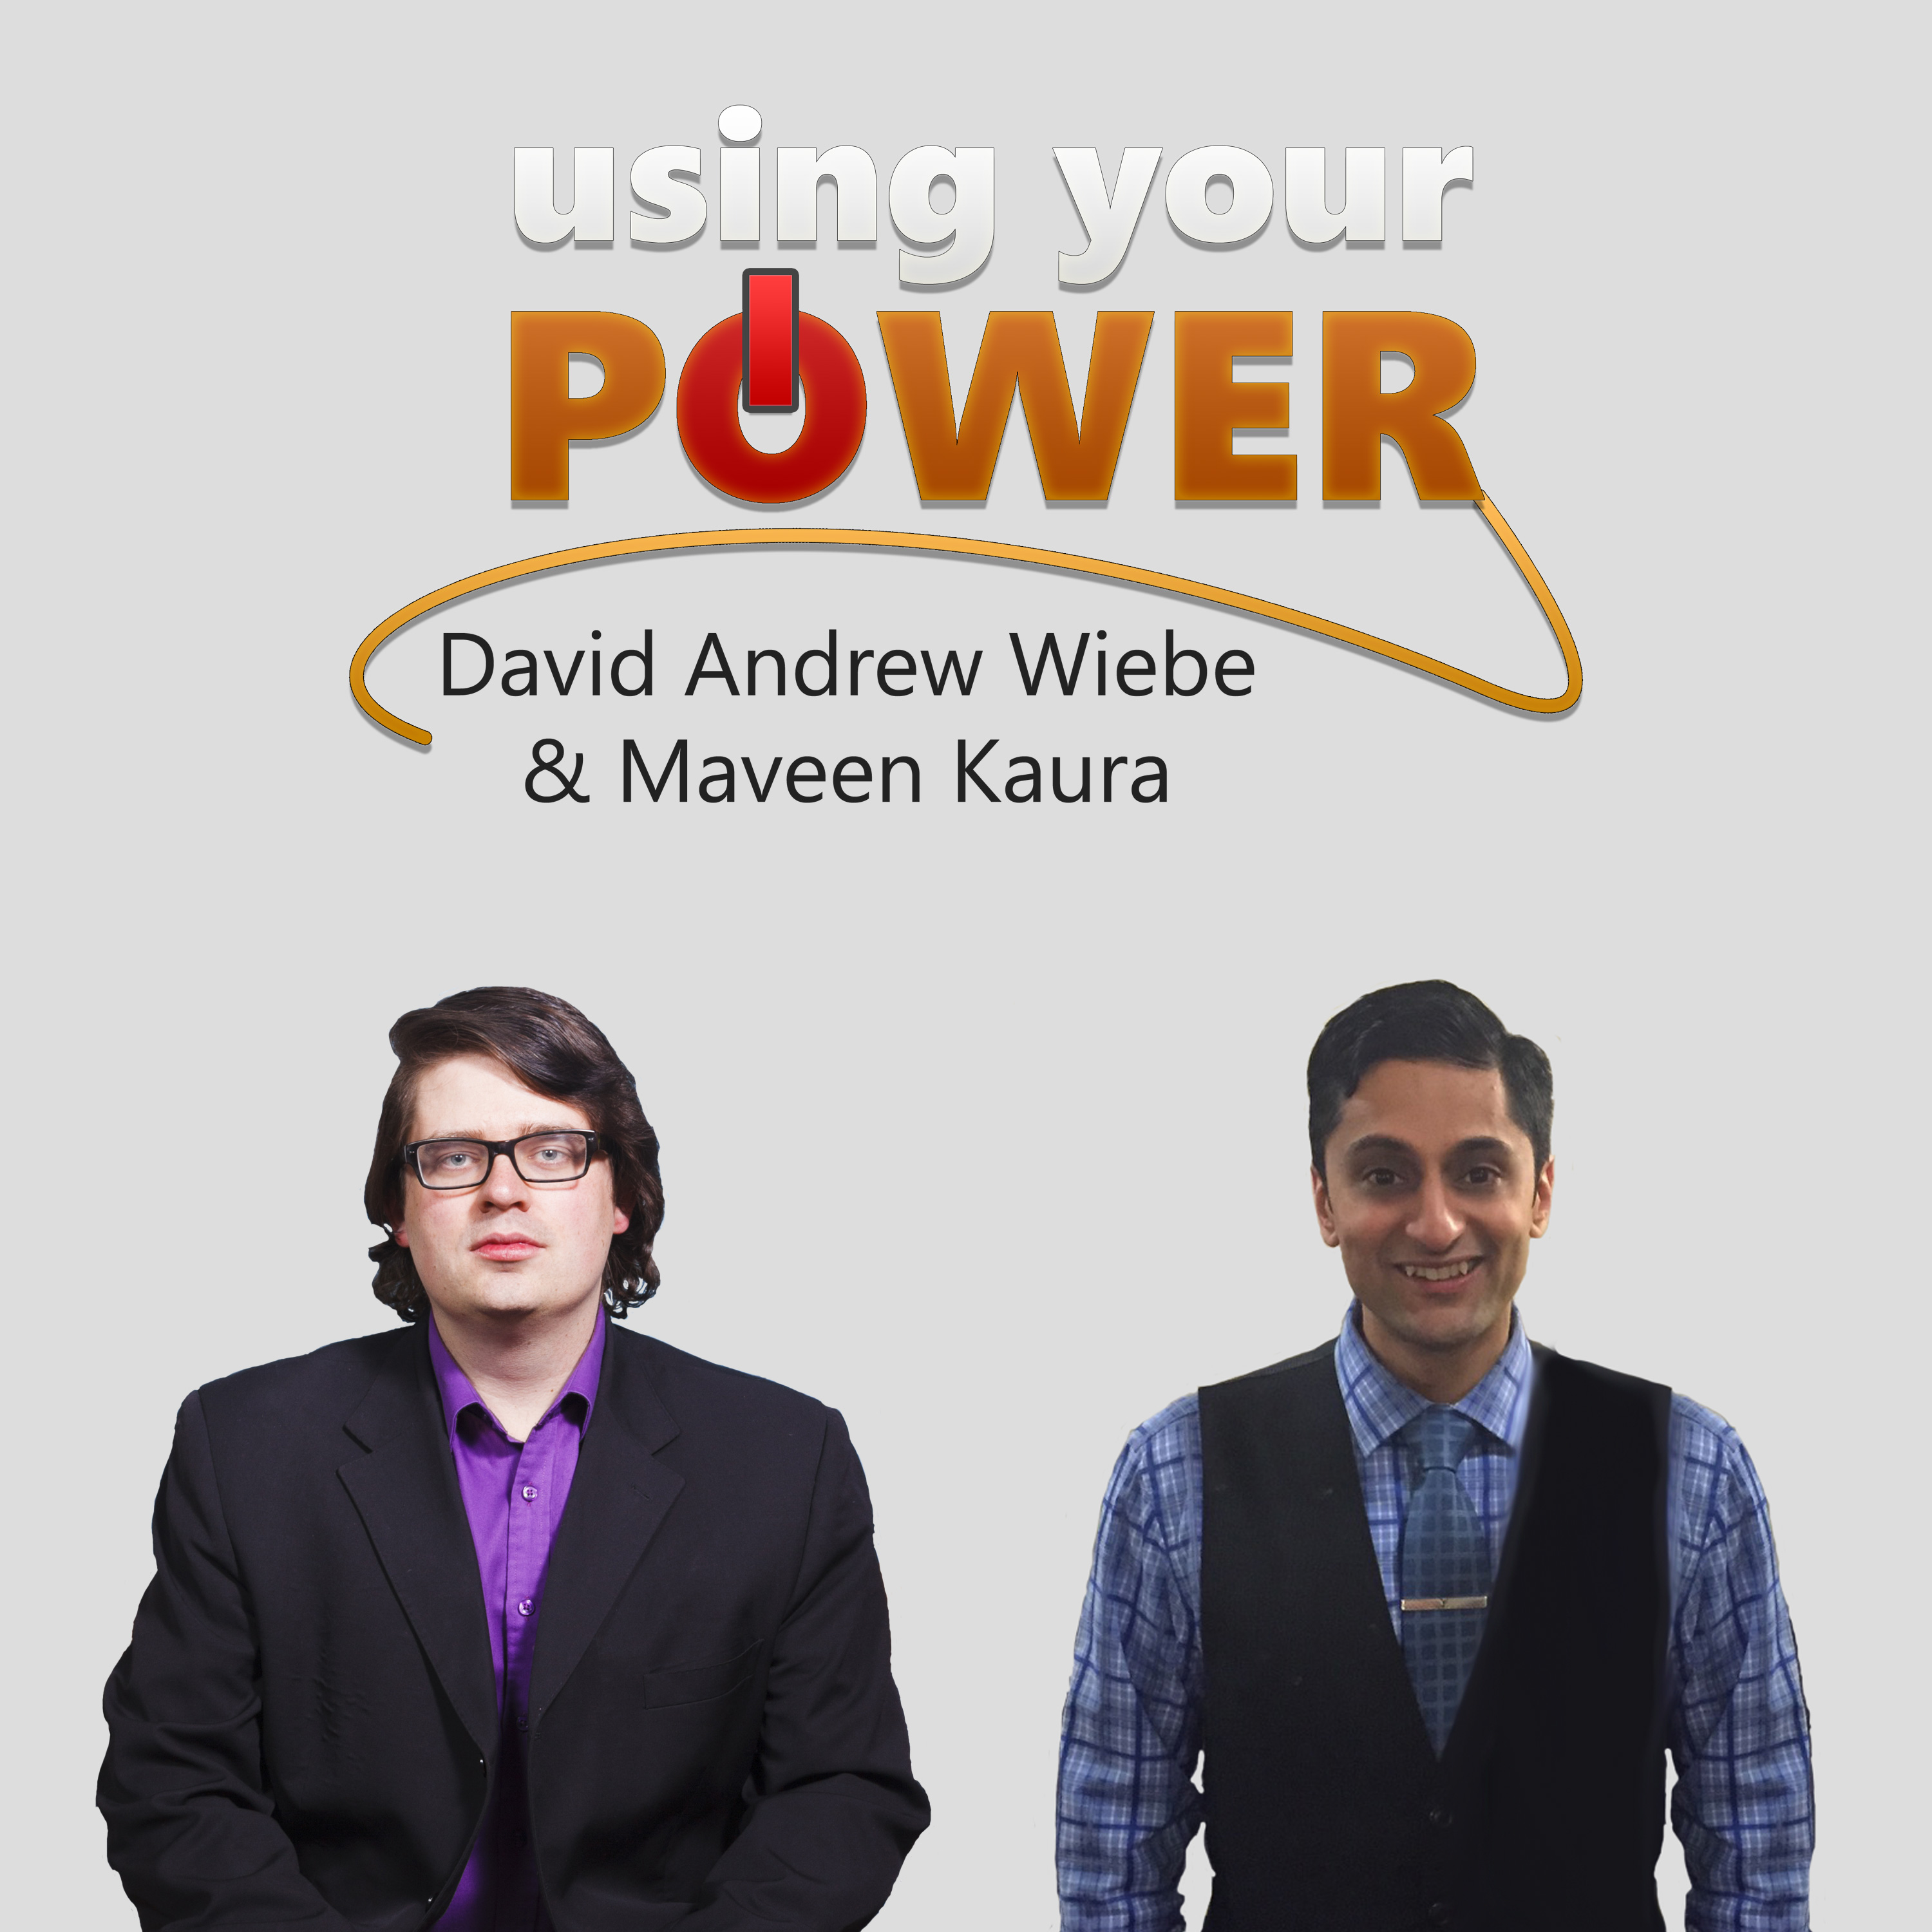 Using Your Power | Going Deeper into Life's Big Questions | with David Andrew Wiebe & Maveen Kaura